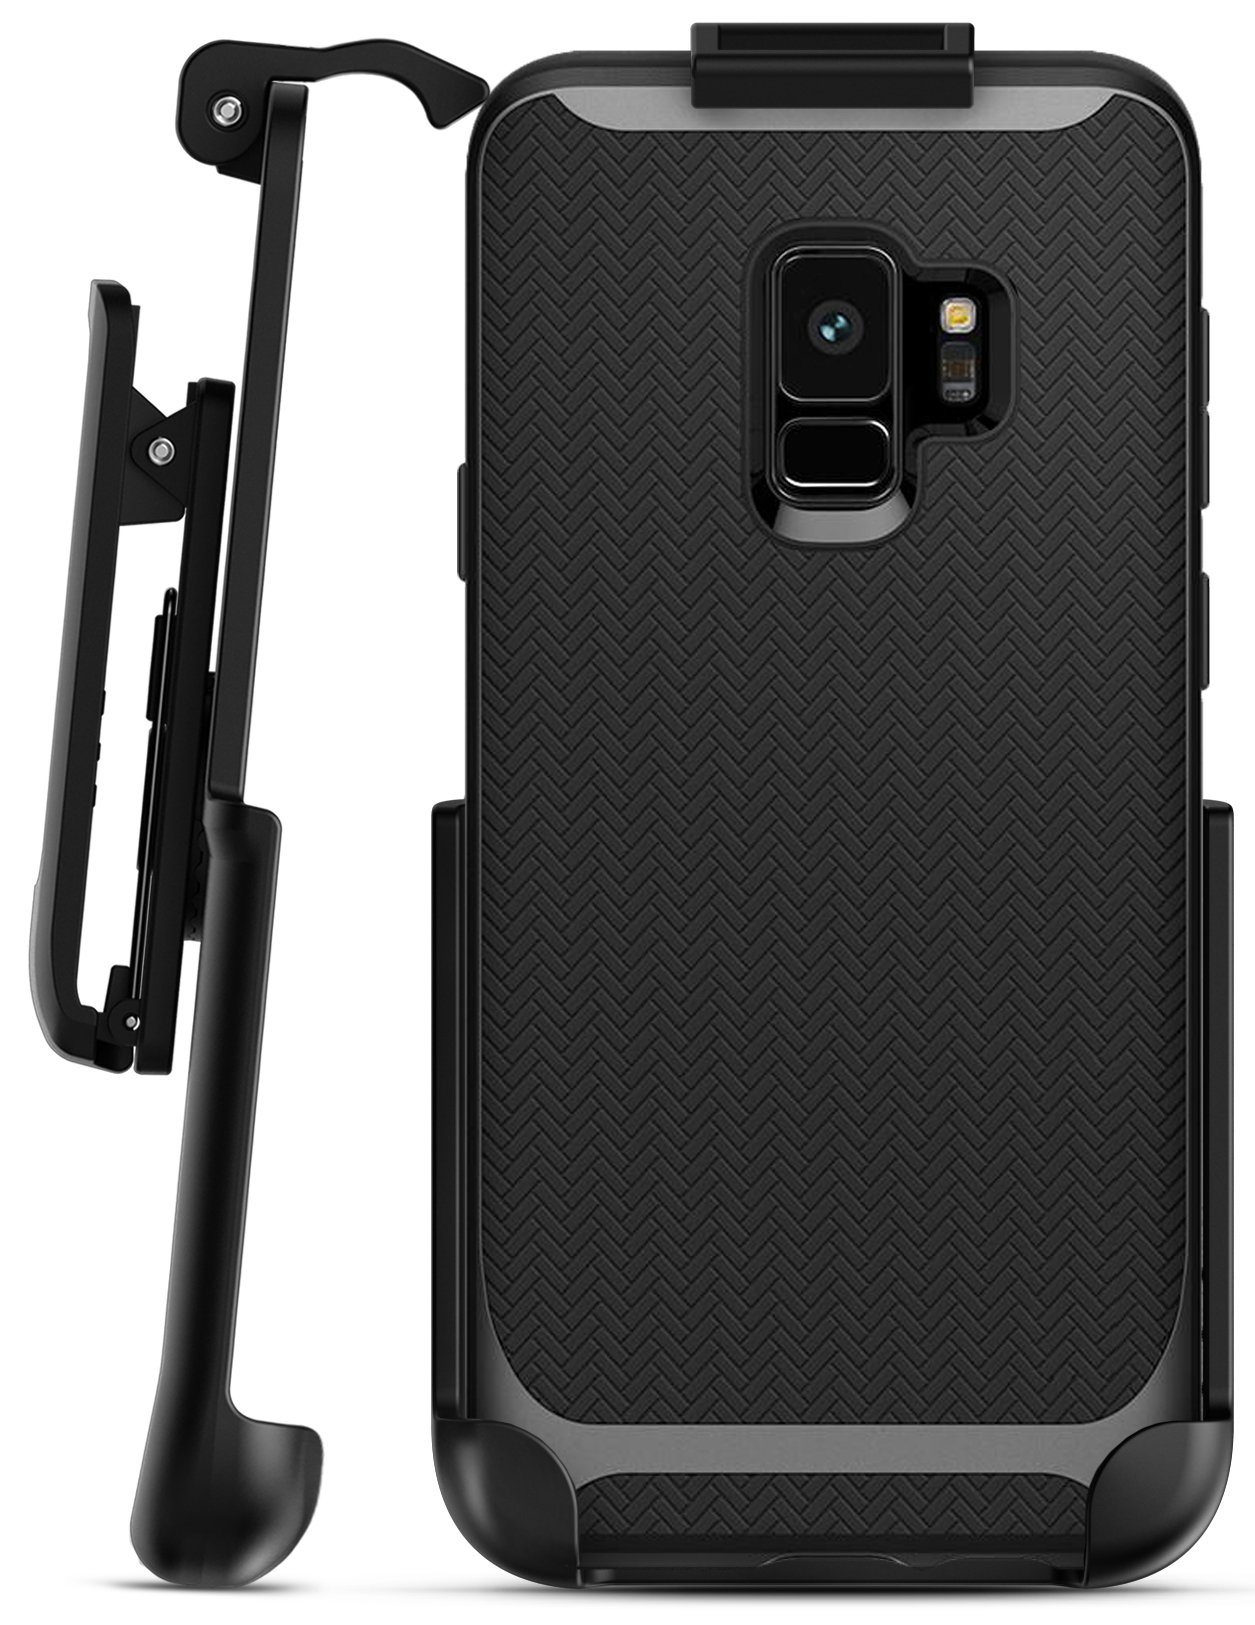 huge selection of 63651 9f8ce Galaxy S9 Spigen Neo Hybrid Holster